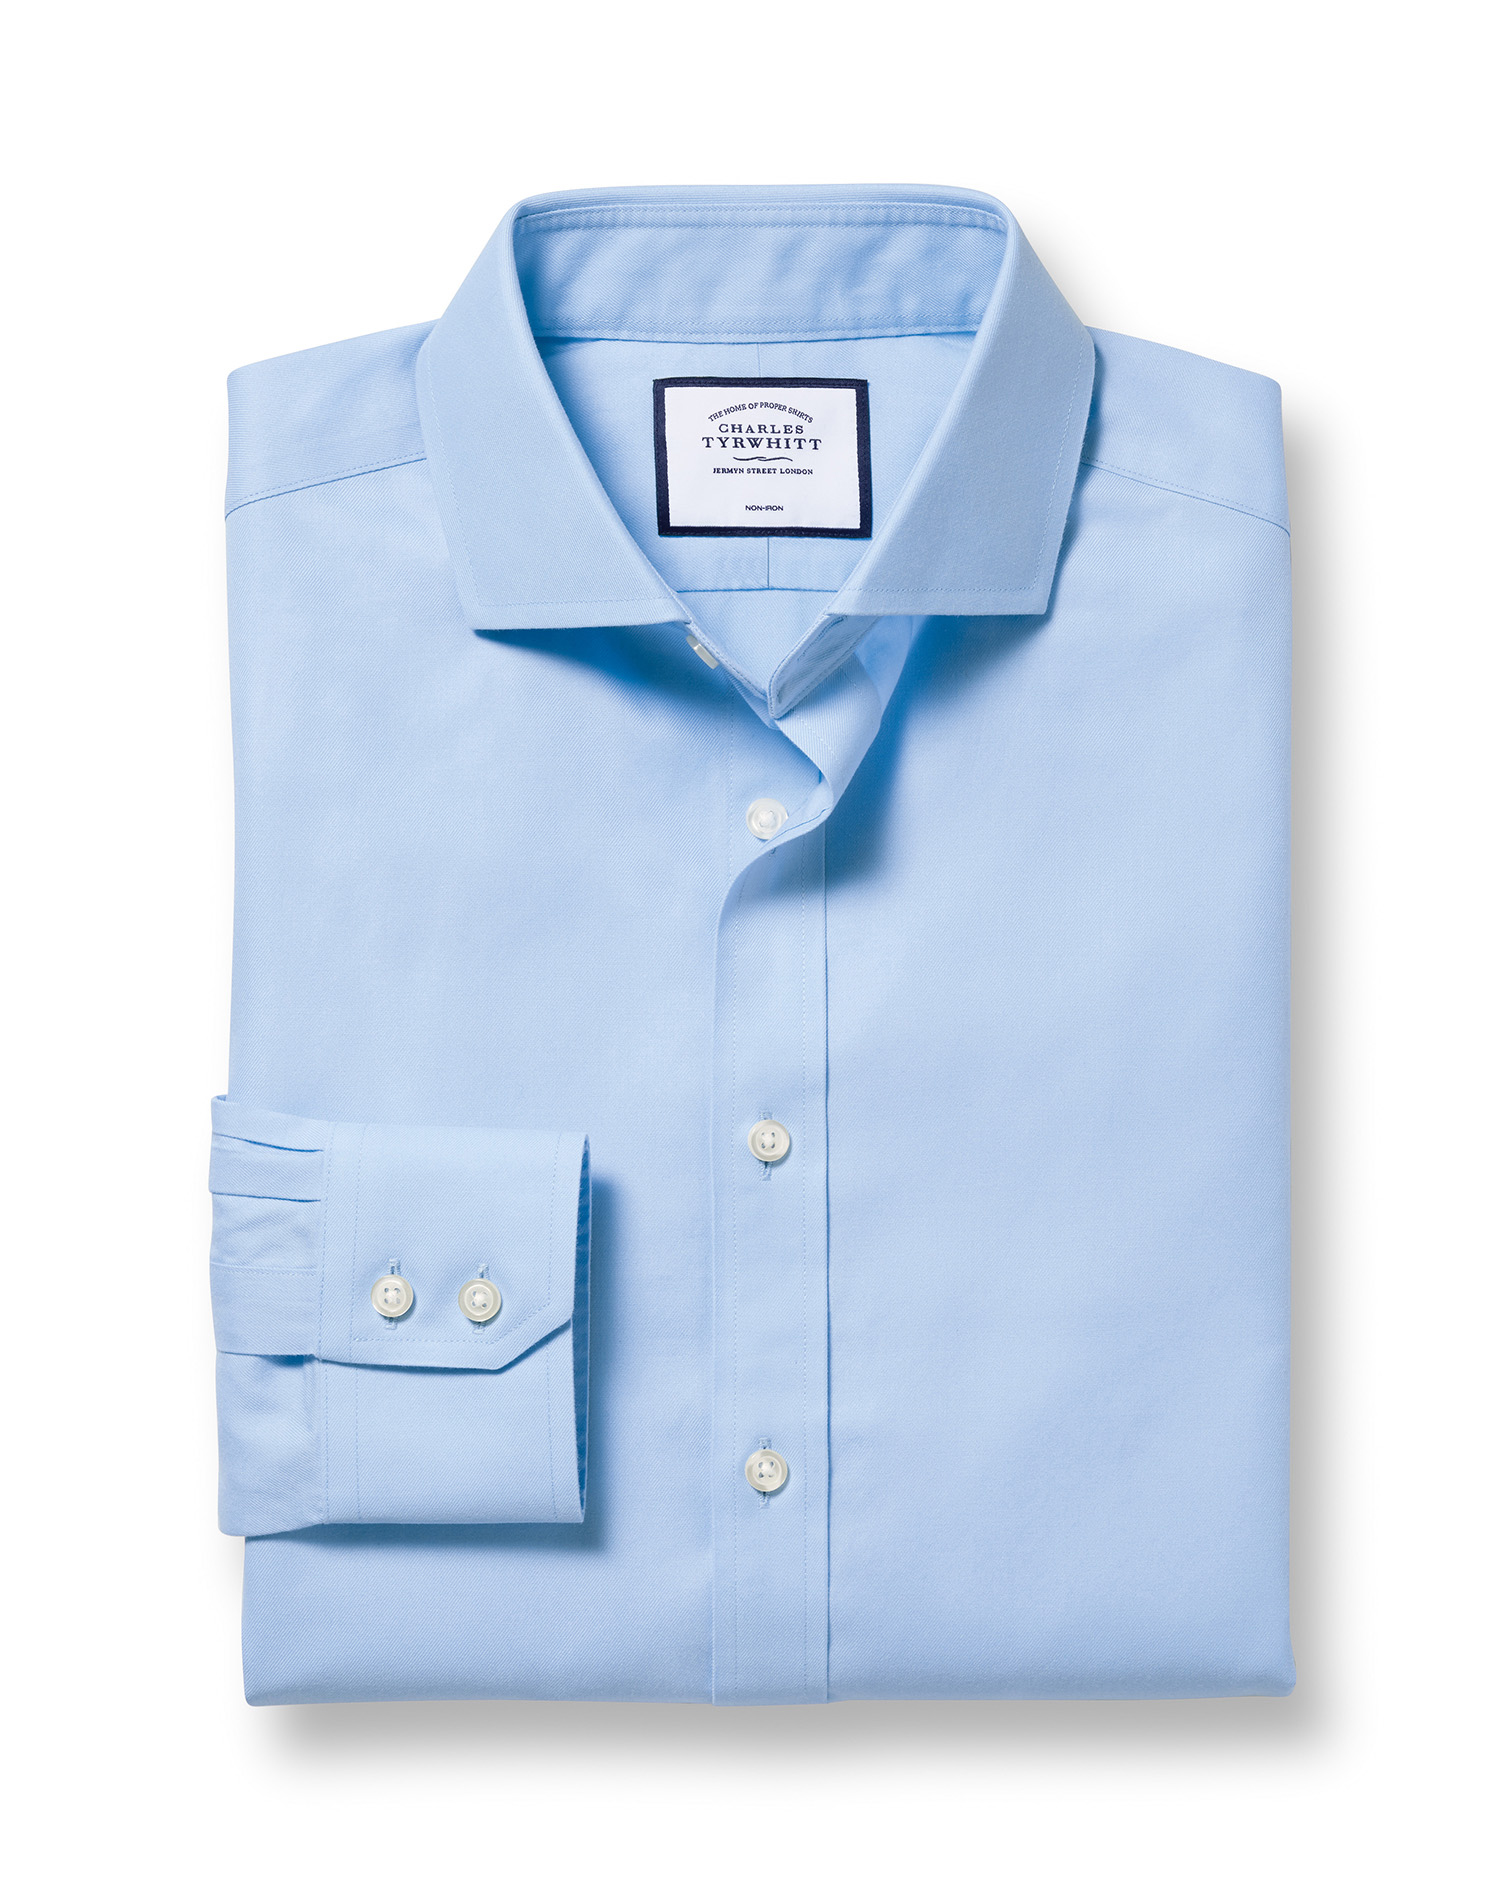 Extra Slim Fit Sky Blue Non-Iron Twill Cutaway Cotton Formal Shirt Single Cuff Size 15.5/35 by Charl